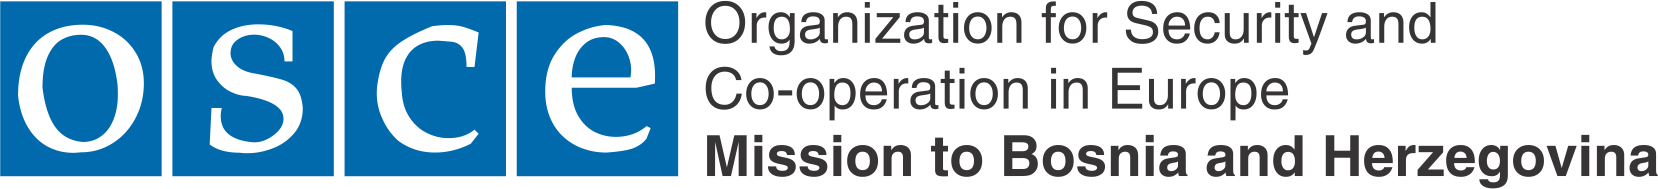 Backup of osce logo krive